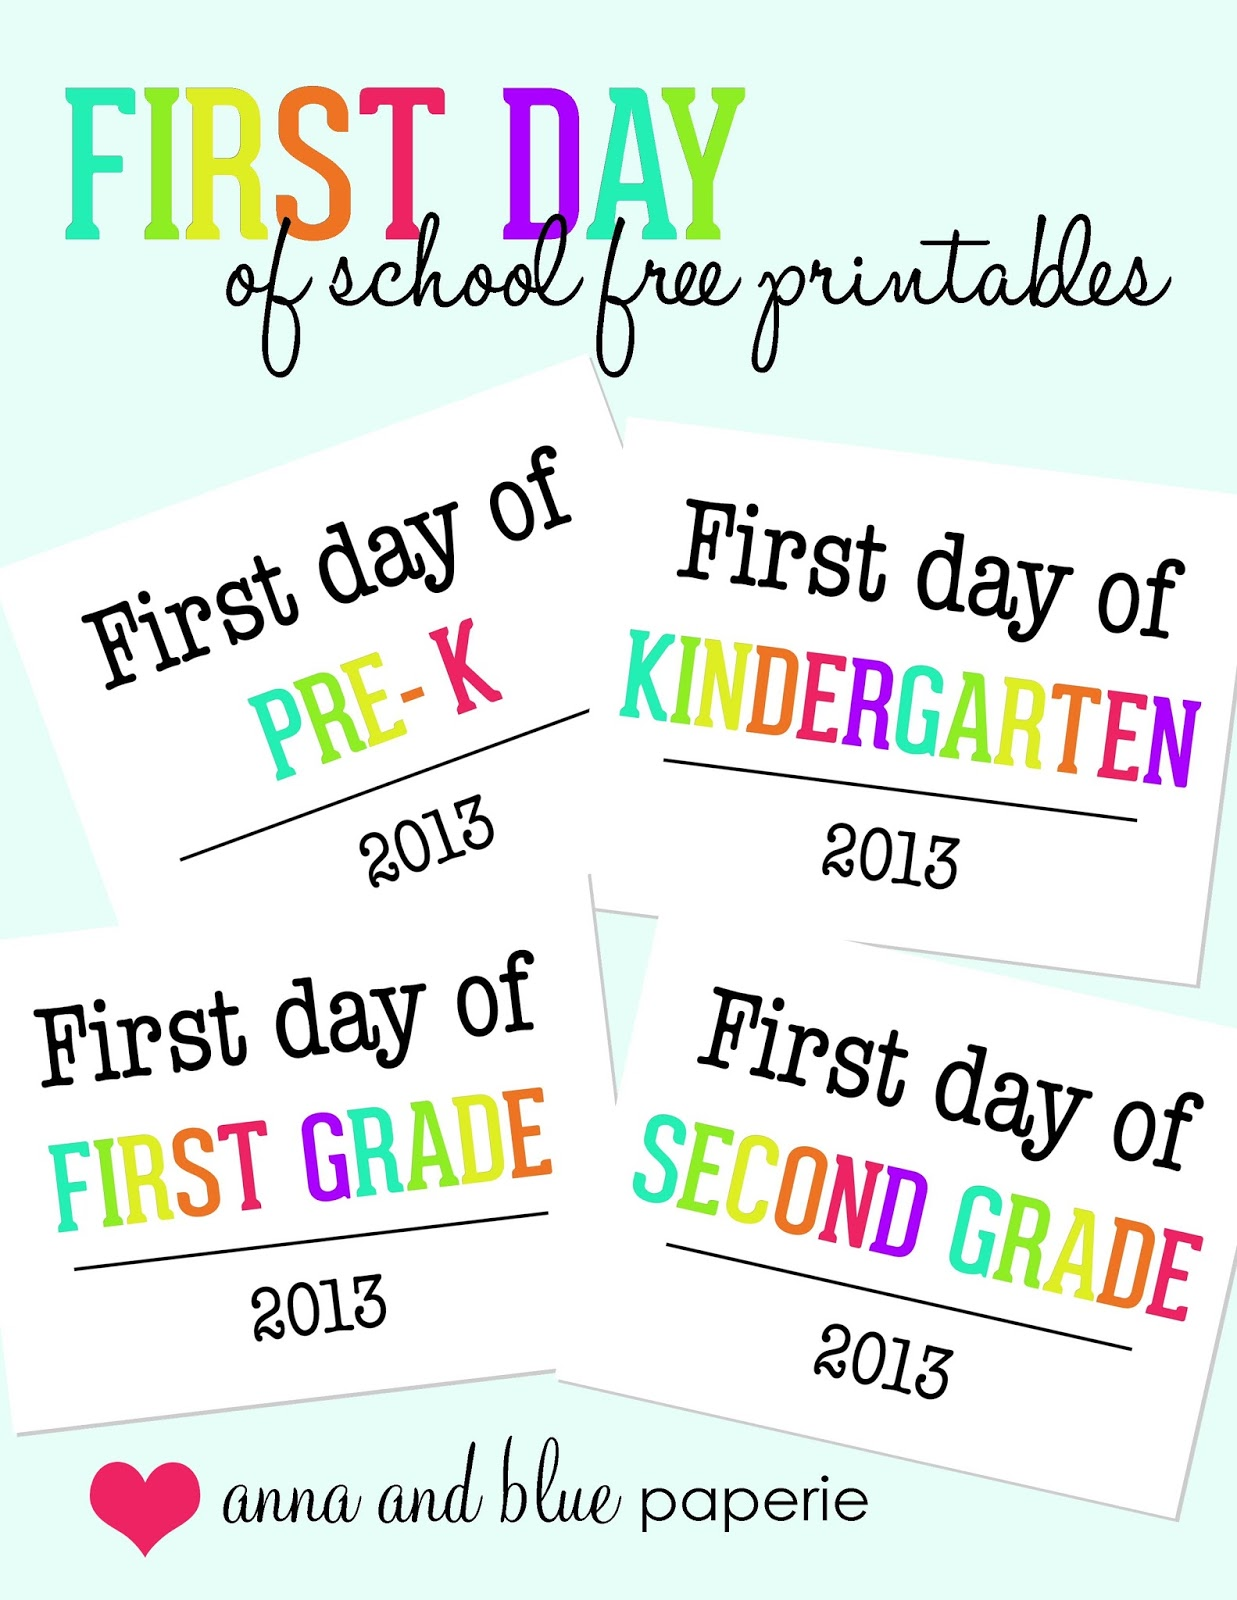 anna and blue paperie First Day of School Photo Op Free Printable – First Day of School Worksheet